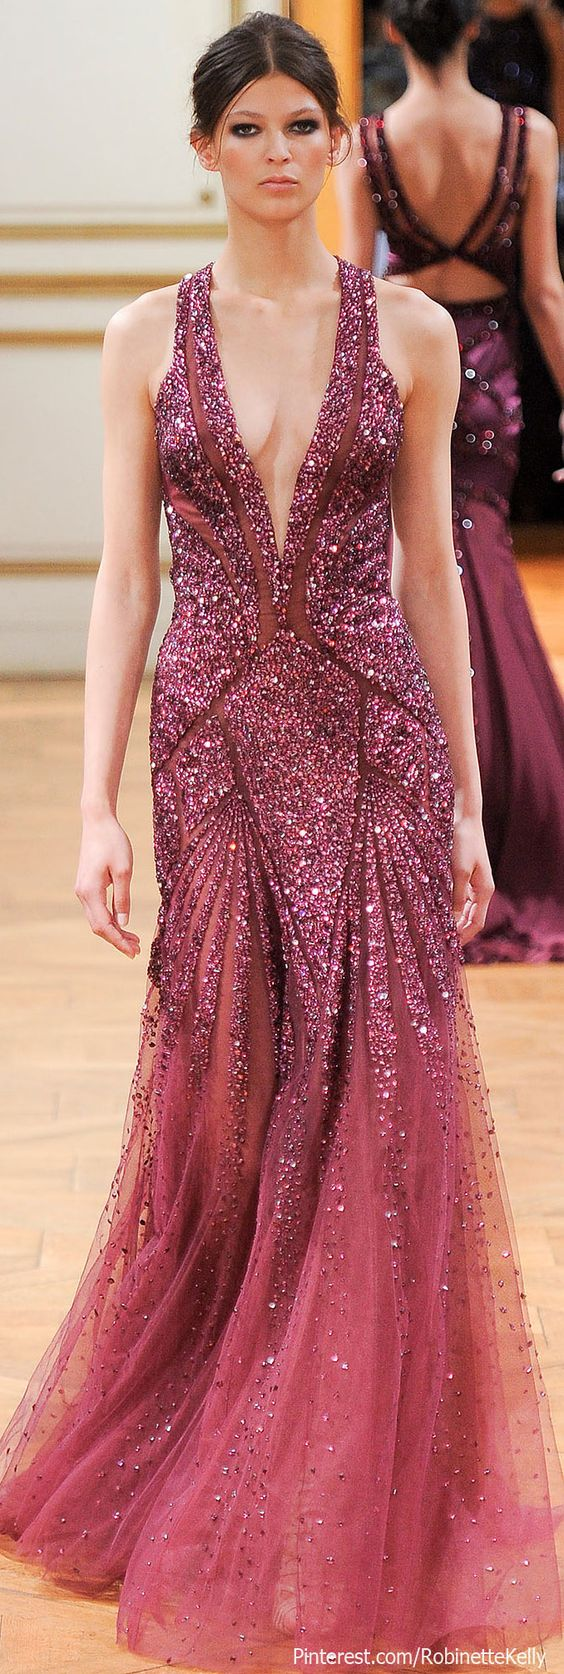 Zuhair Murad Haute Couture | F/W 2013.  *drool*: